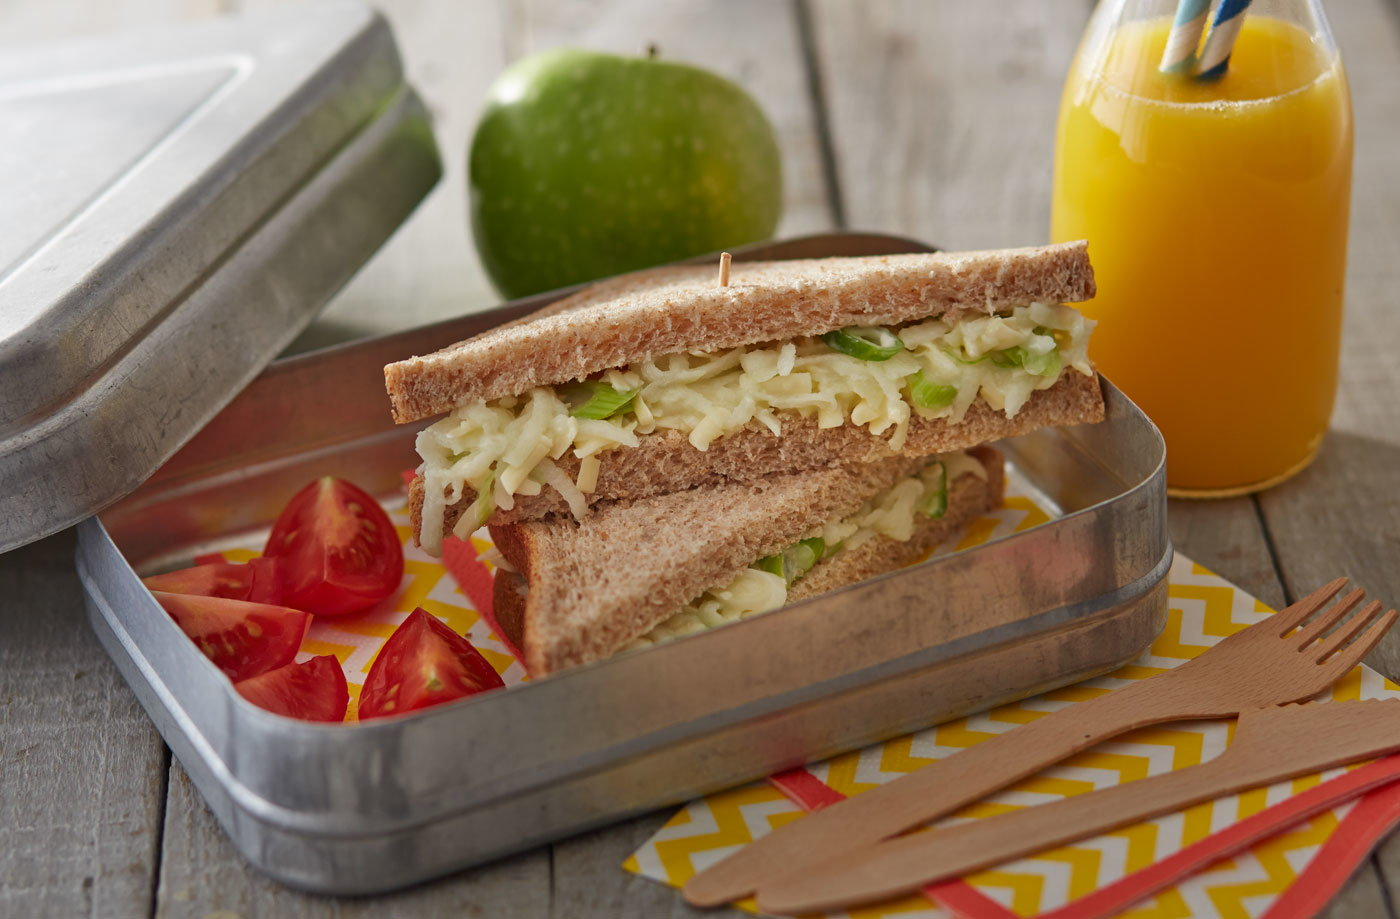 Cheese and apple slaw sandwiches recipe